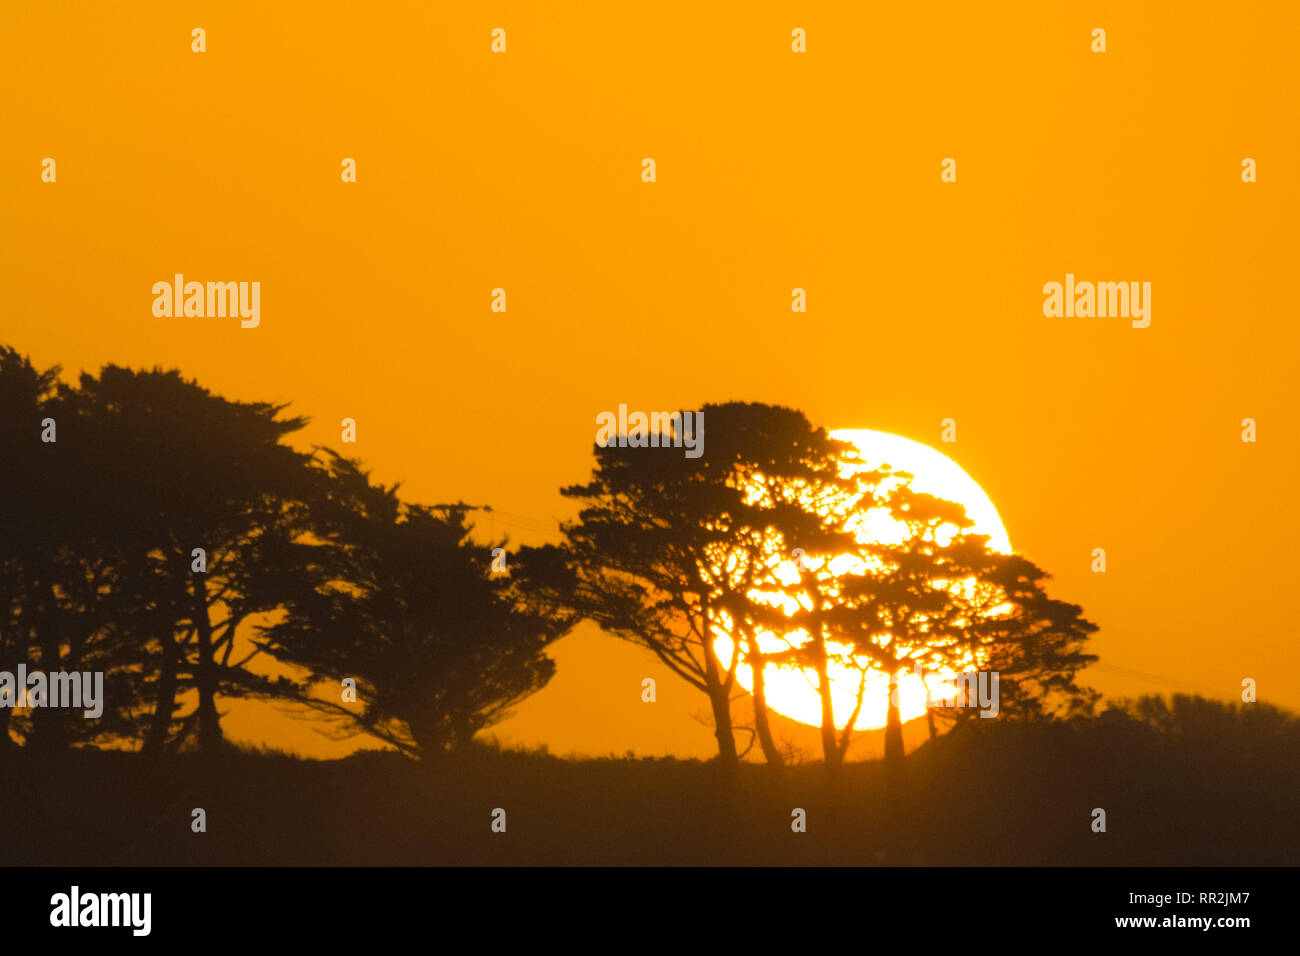 The sun rising behind a group of trees with a yellow sky - Stock Image